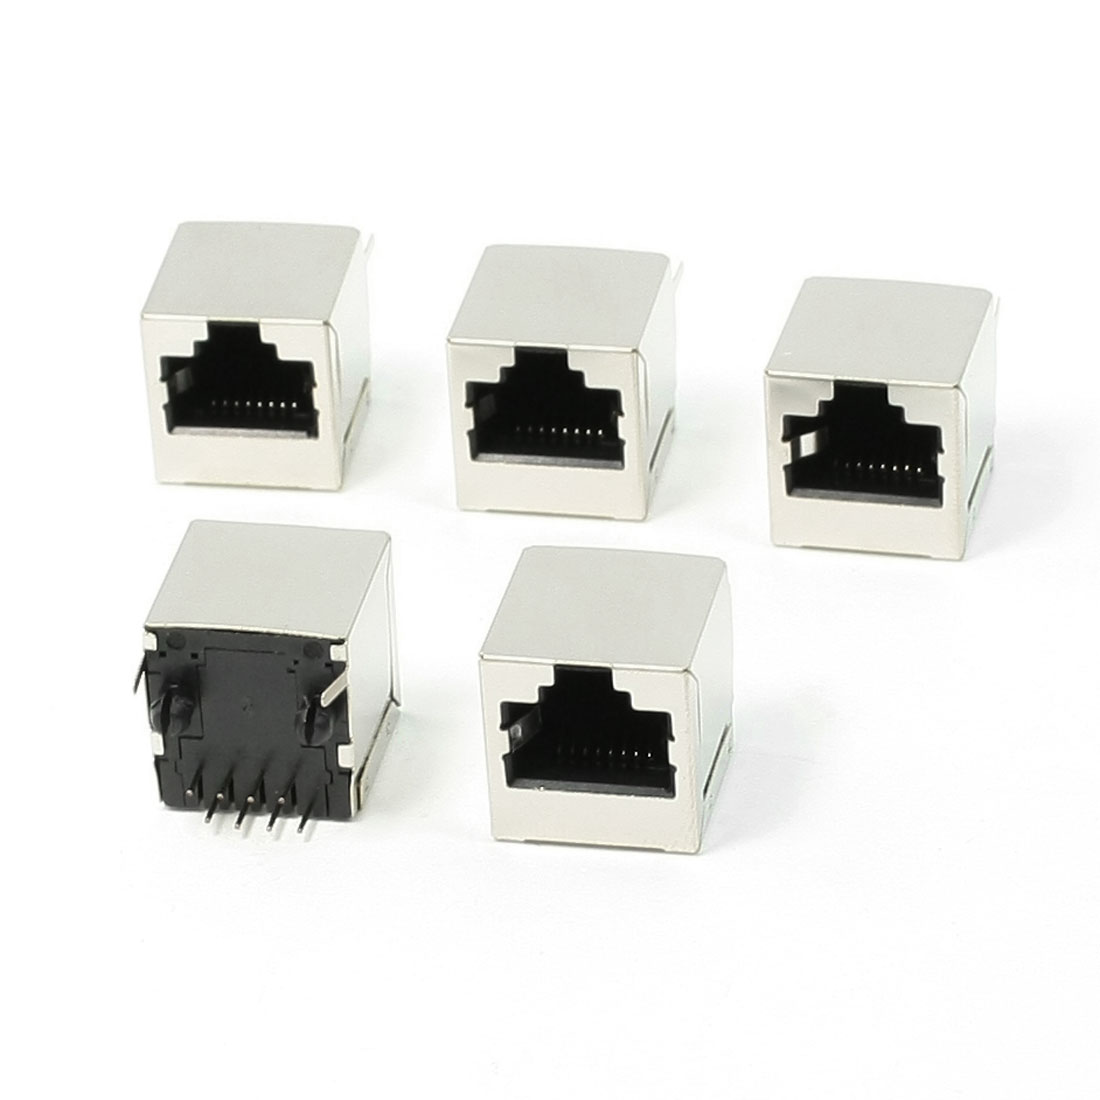 5 Pcs 8 Pin RJ45 Jack Vertical Port 16 x 15.5 x 16mm for Ethernet